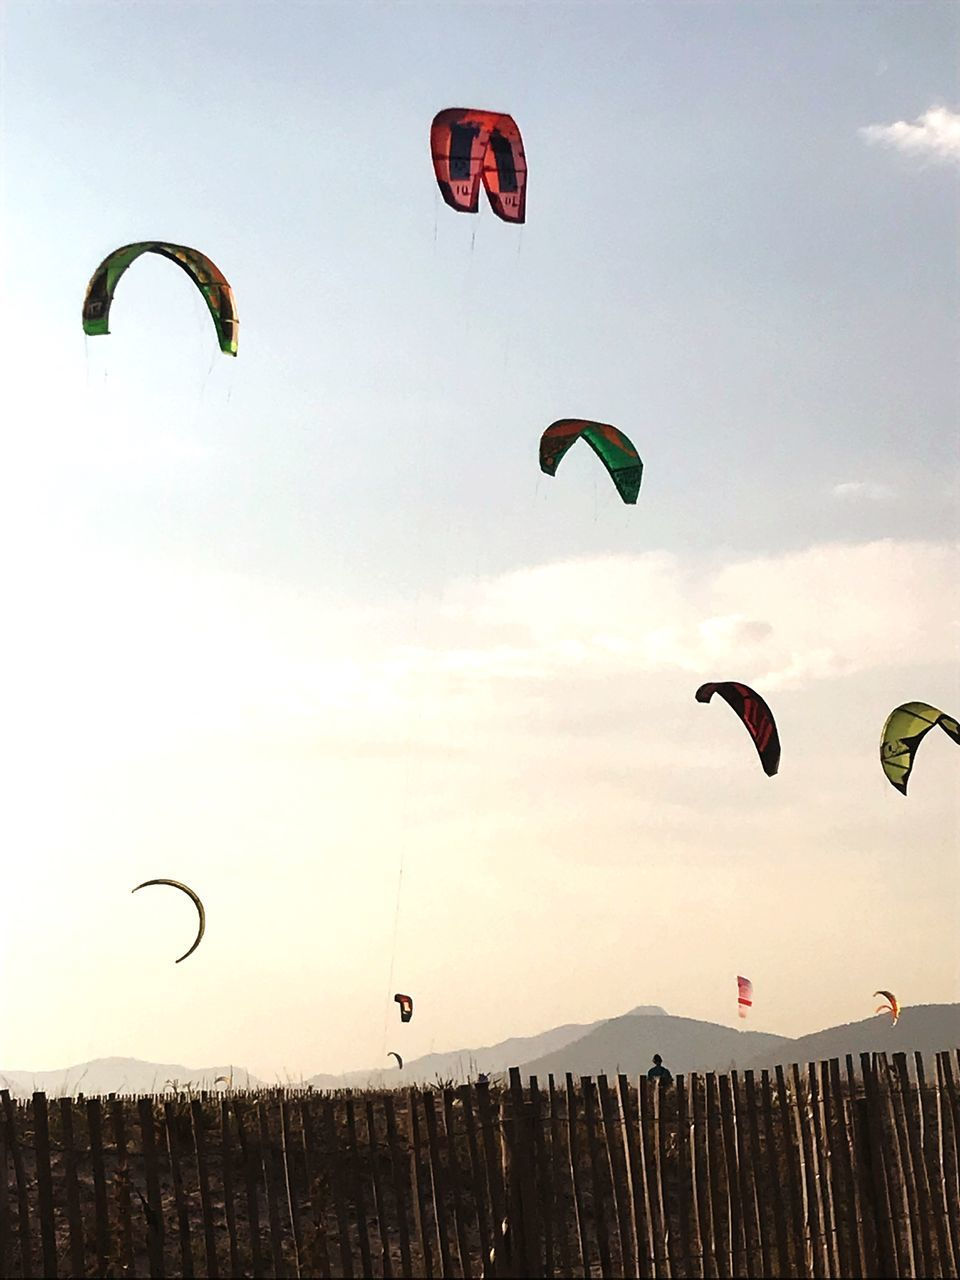 adventure, extreme sports, sky, sport, parachute, paragliding, flying, leisure activity, nature, mid-air, low angle view, lifestyles, unrecognizable person, transportation, real people, exhilaration, freedom, beauty in nature, people, group of people, outdoors